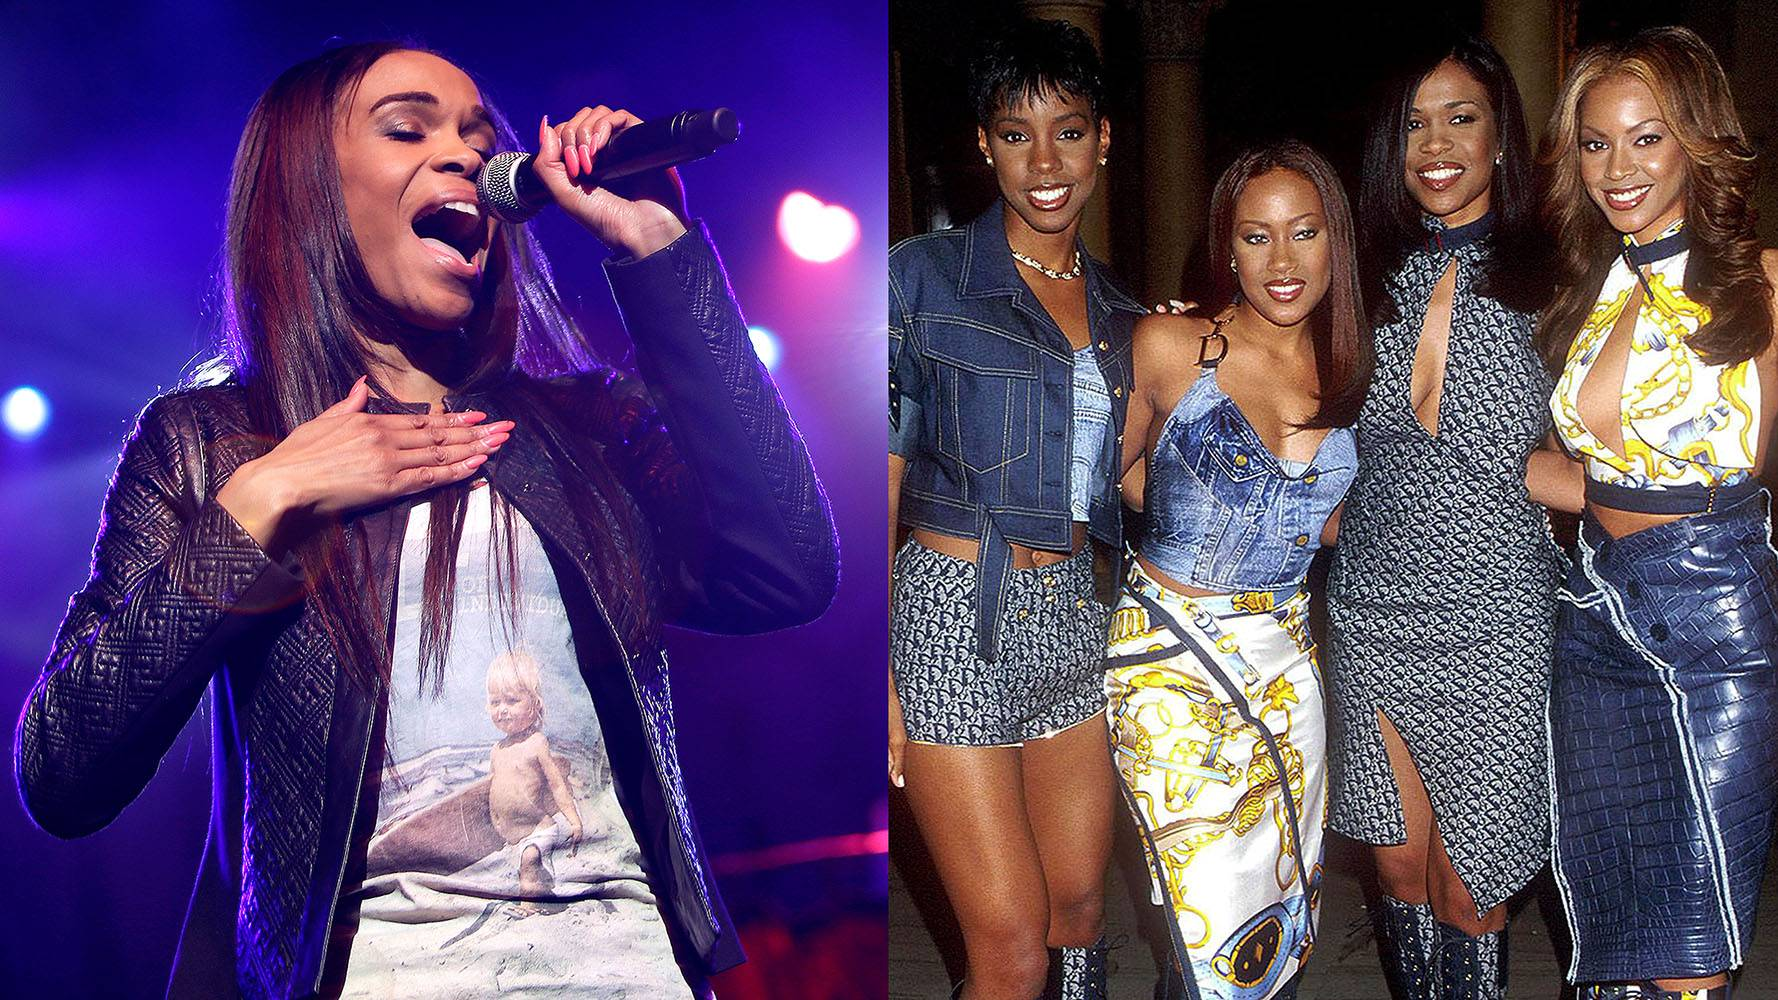 Michelle Williams | Destiny's Child   - She can't shake her destiny! Even though Michelle has gone gospel, we'll always have the luxury of chalking up her tremendous singing experience to all those world tours, music videos and chart-topping albums back in her Destiny's Child days. (Photos from Left: Mike McGinnis/Getty Images, Brenda Chase/Getty Images)